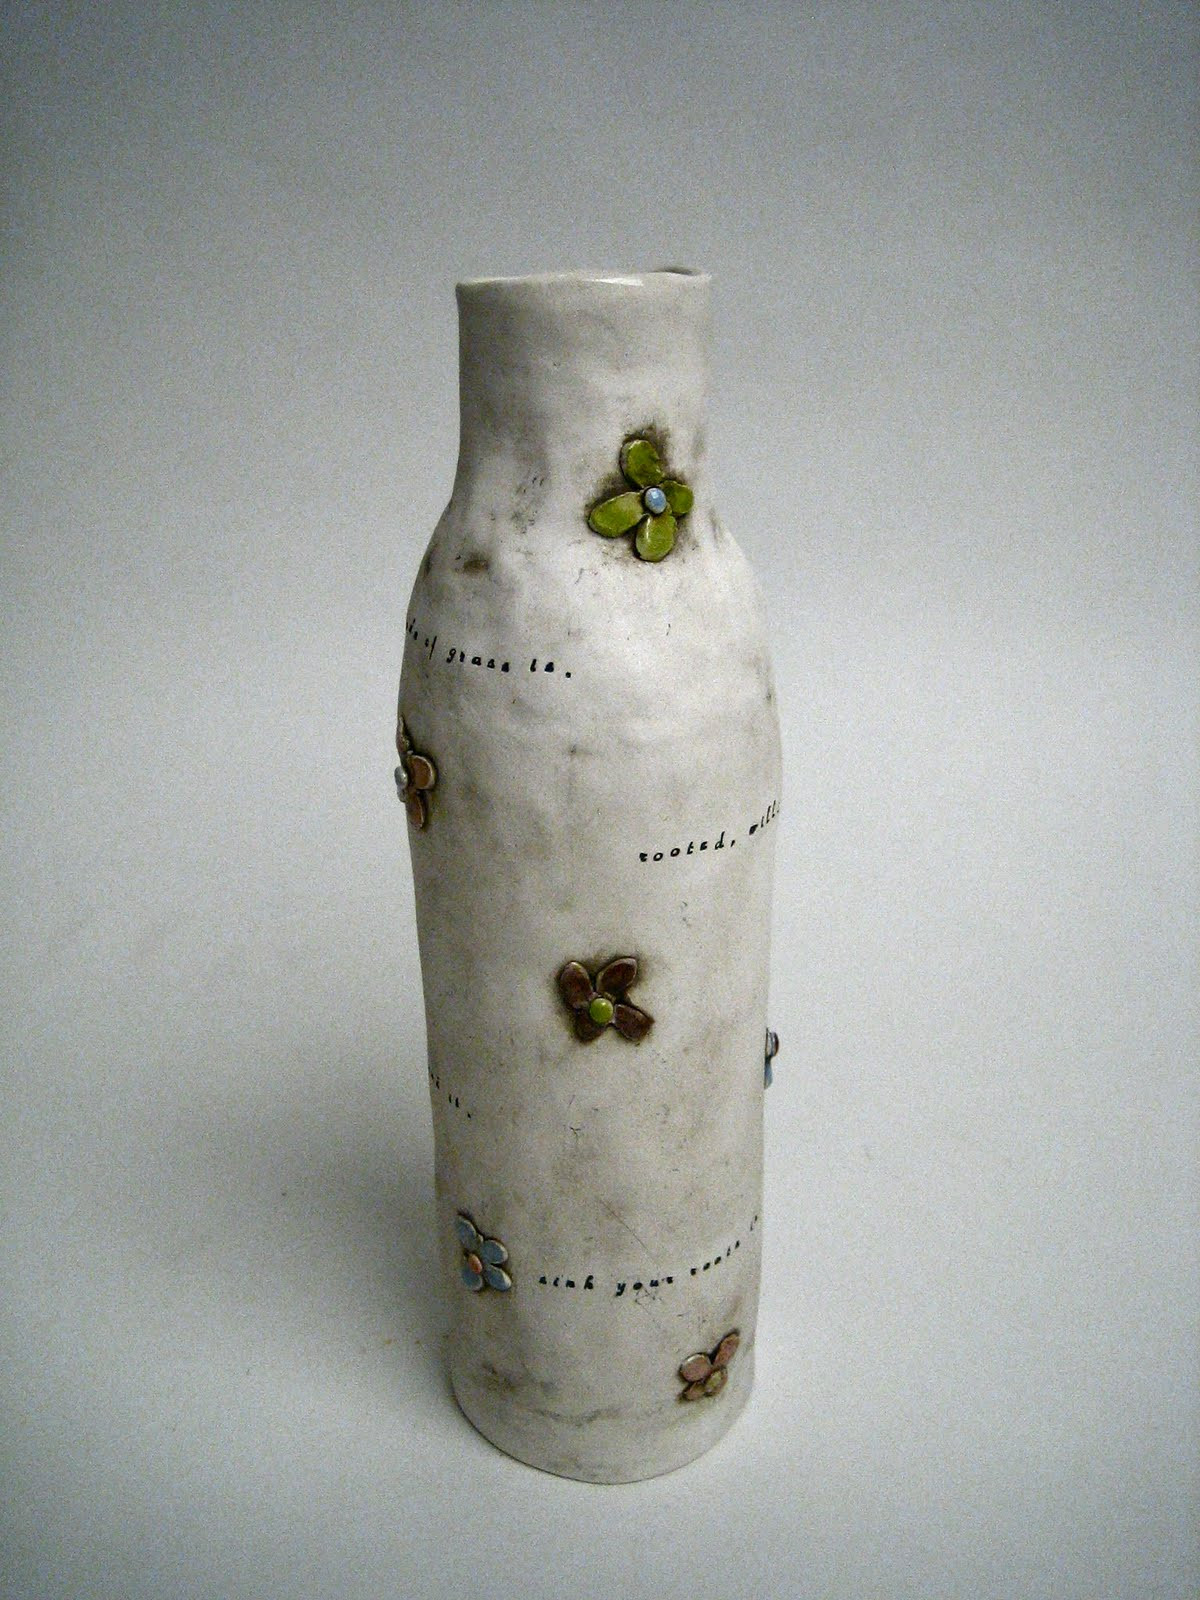 Corner Flower Vase Online Of Vases Rae Dunn Clay Fine Handmade Pottery within I Made A Few Smaller Versions Of the Flower Power Vase